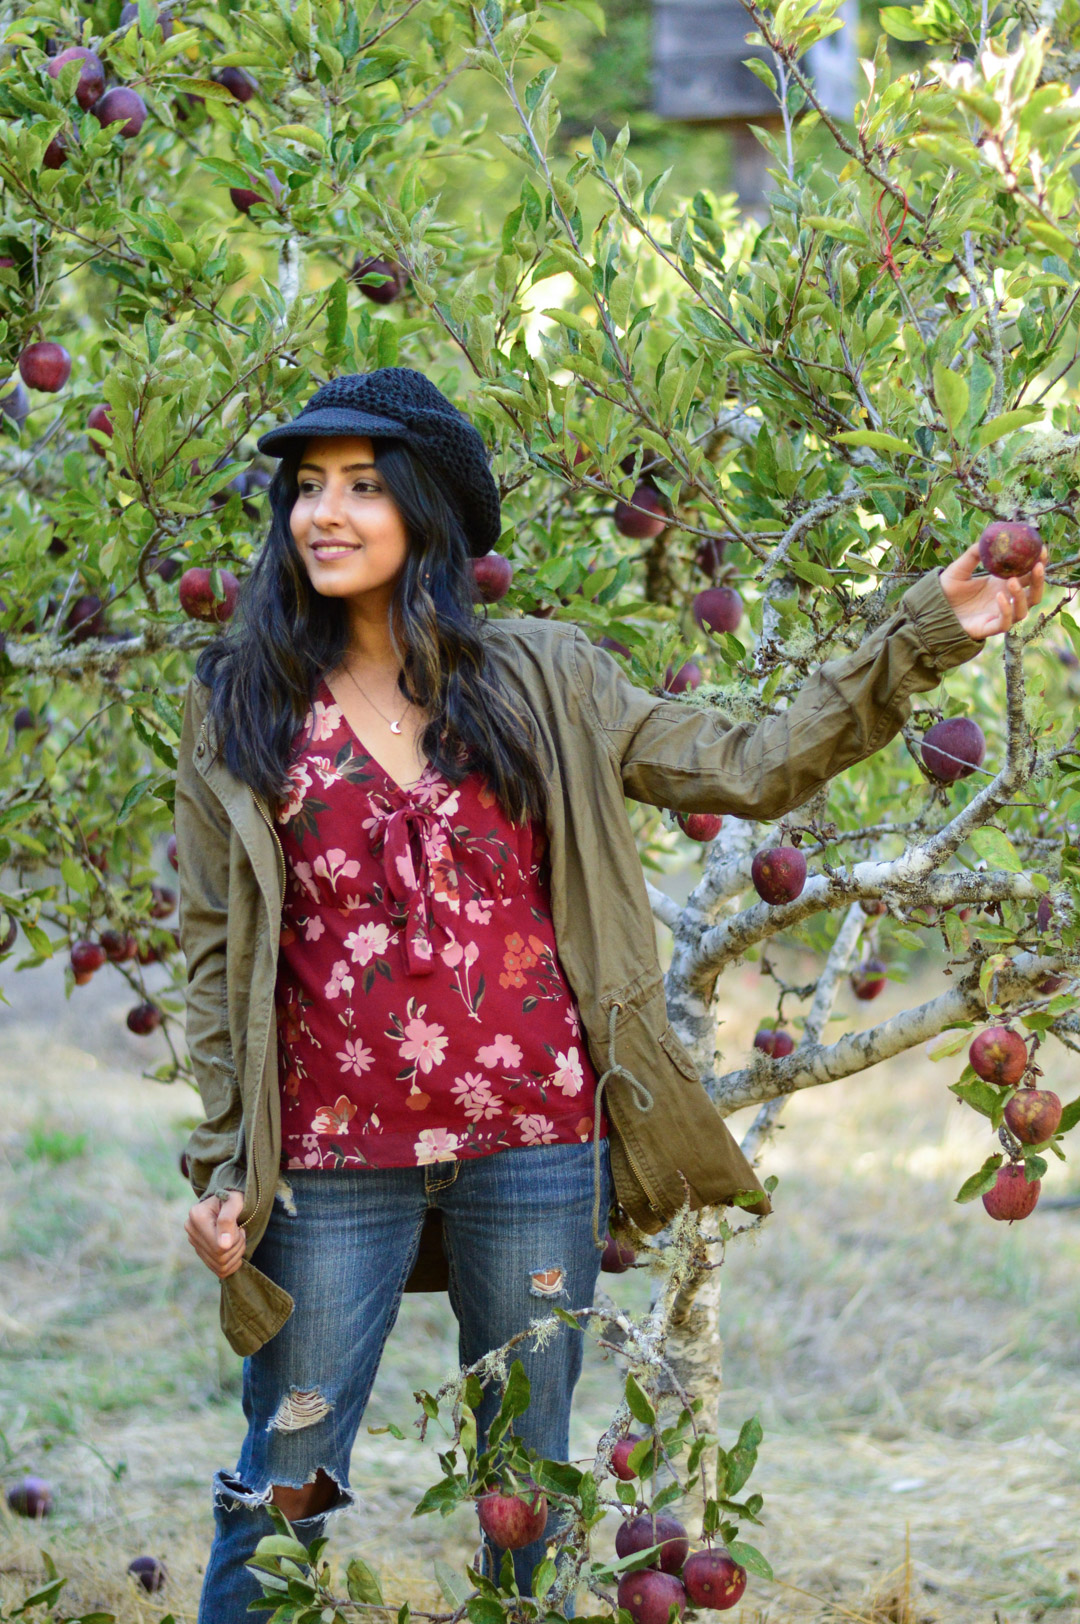 apple-picking-fall-florals-utility-jacket-california-style 2